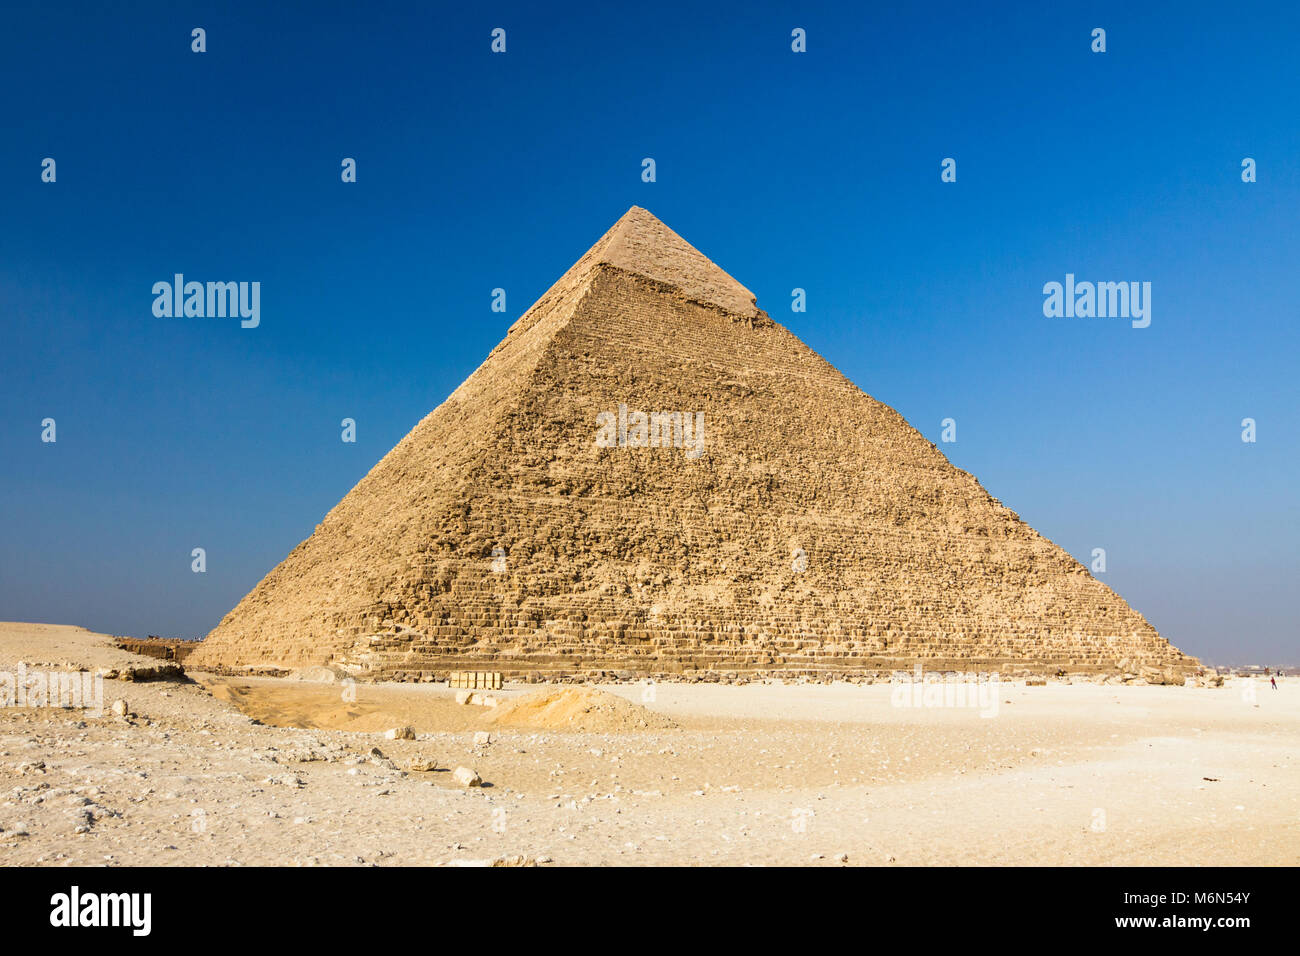 Pyramide de Khéphren, Le Caire, Egypte Photo Stock